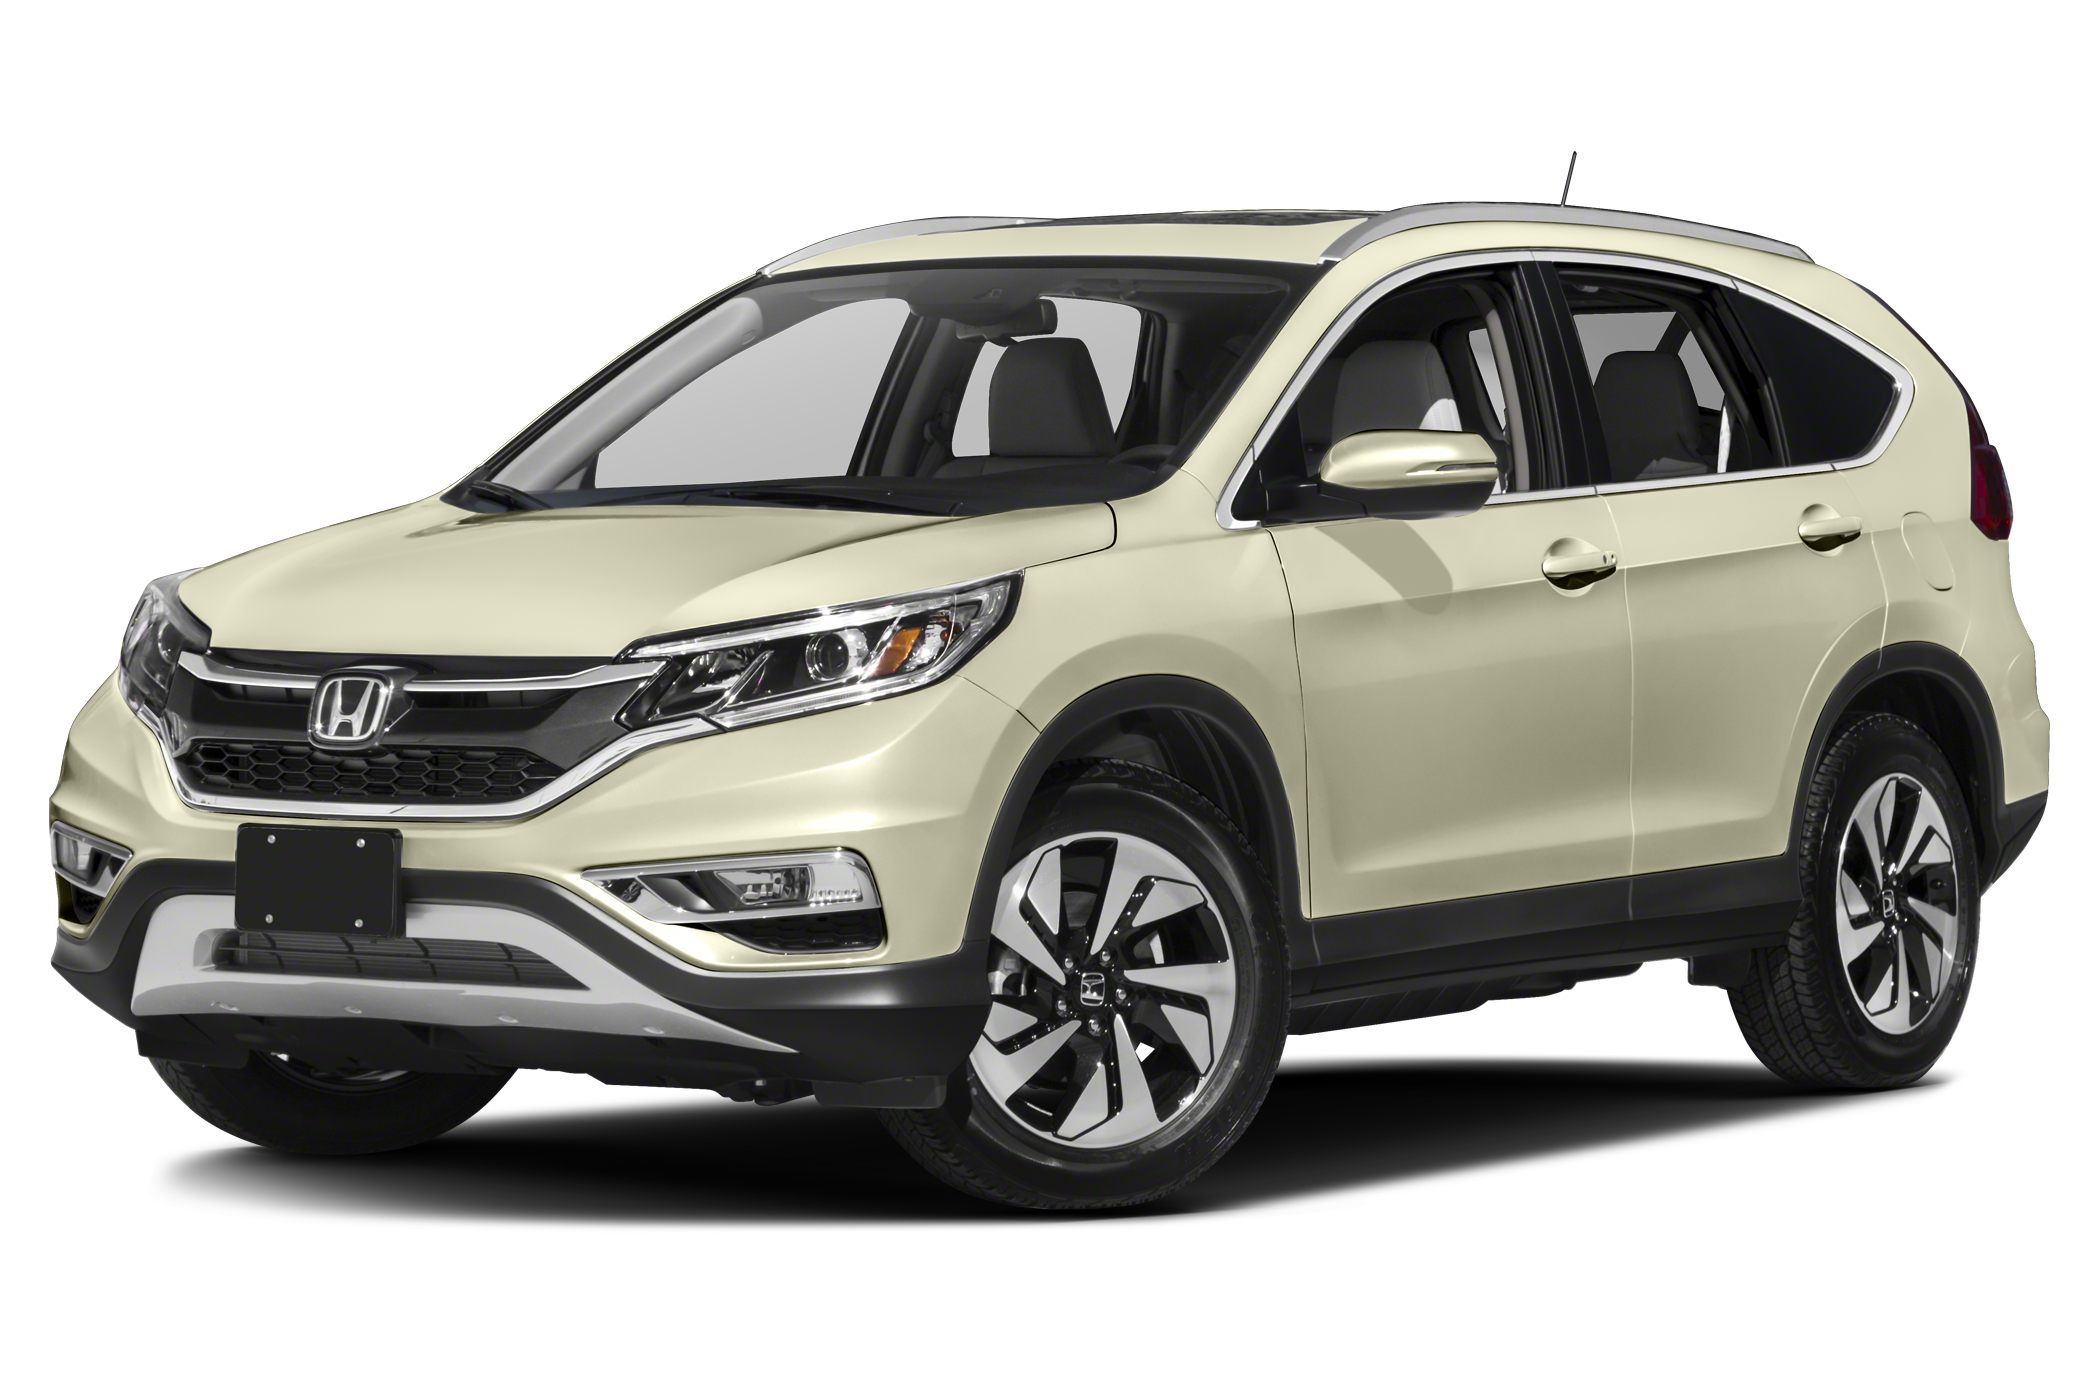 2016 Honda CR-V Touring Outstanding fuel economy for an SUV Seize the road with solid stability a